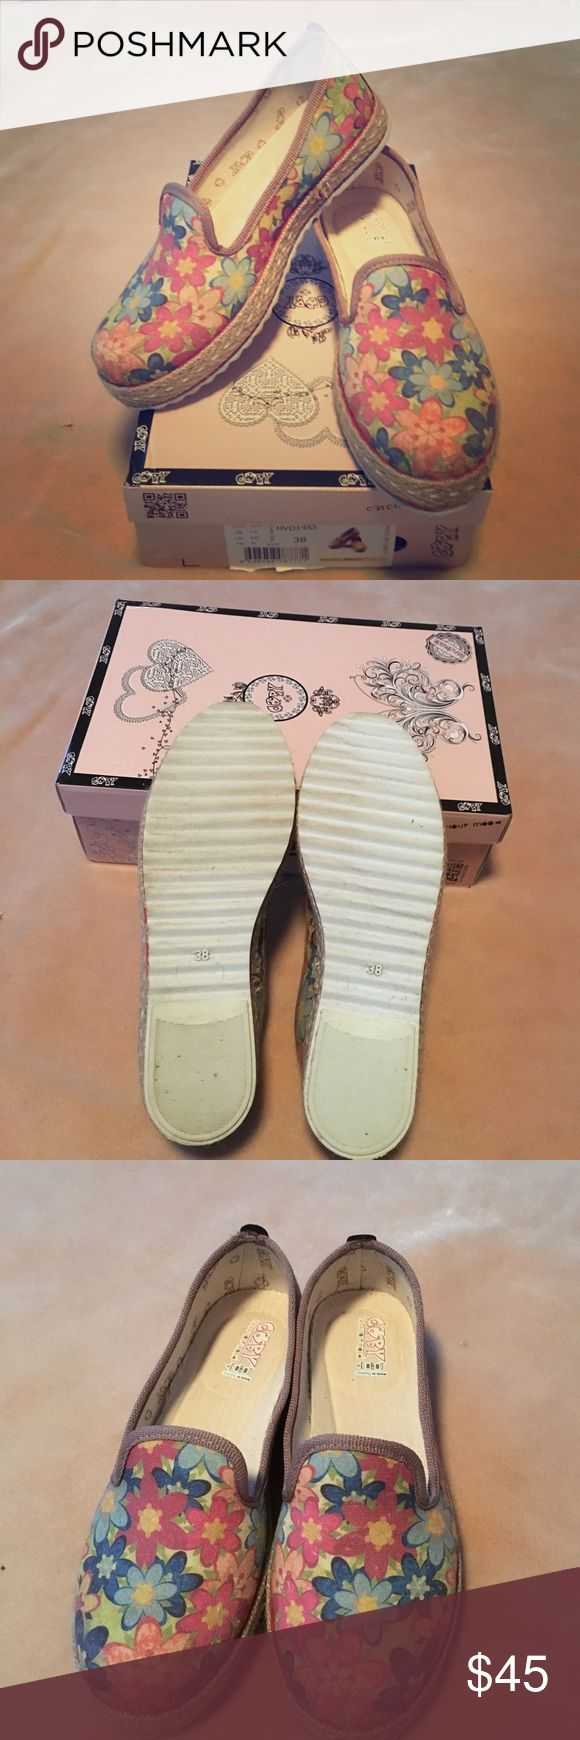 Goby canvas floral espadrilles. Size 38 These canvas espadrilles have a padded foam insole. The floral pattern is slightly muted. They were worn once inside for fit only. They are a little shorter than my other Goby size 38 shoes.  Essentially they are new in box. Goby Shoes Espadrilles